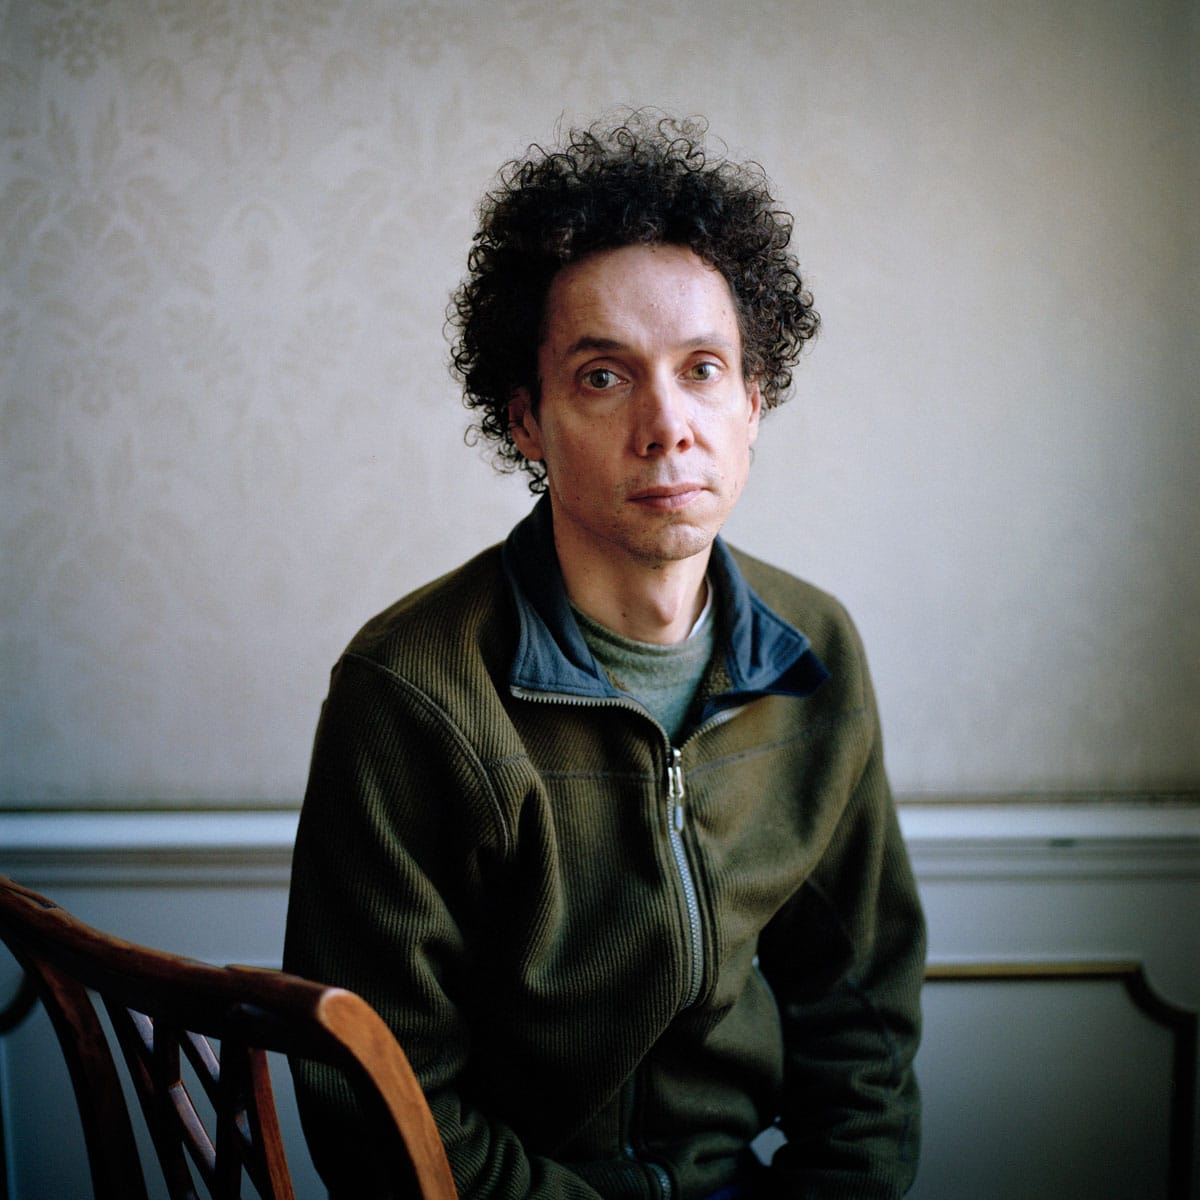 Malcolm Gladwell (born September 3, 1963) is a British-born Canadian journalist, author, and pop sociologist, based in New York City. He has been a staff writer for The New Yorker since 1996. He is best known as the author of the books The Tipping Point (2000), Blink (2005), and Outliers (2008). PHOTO AND COPYRIGHT ROGER CREMERS